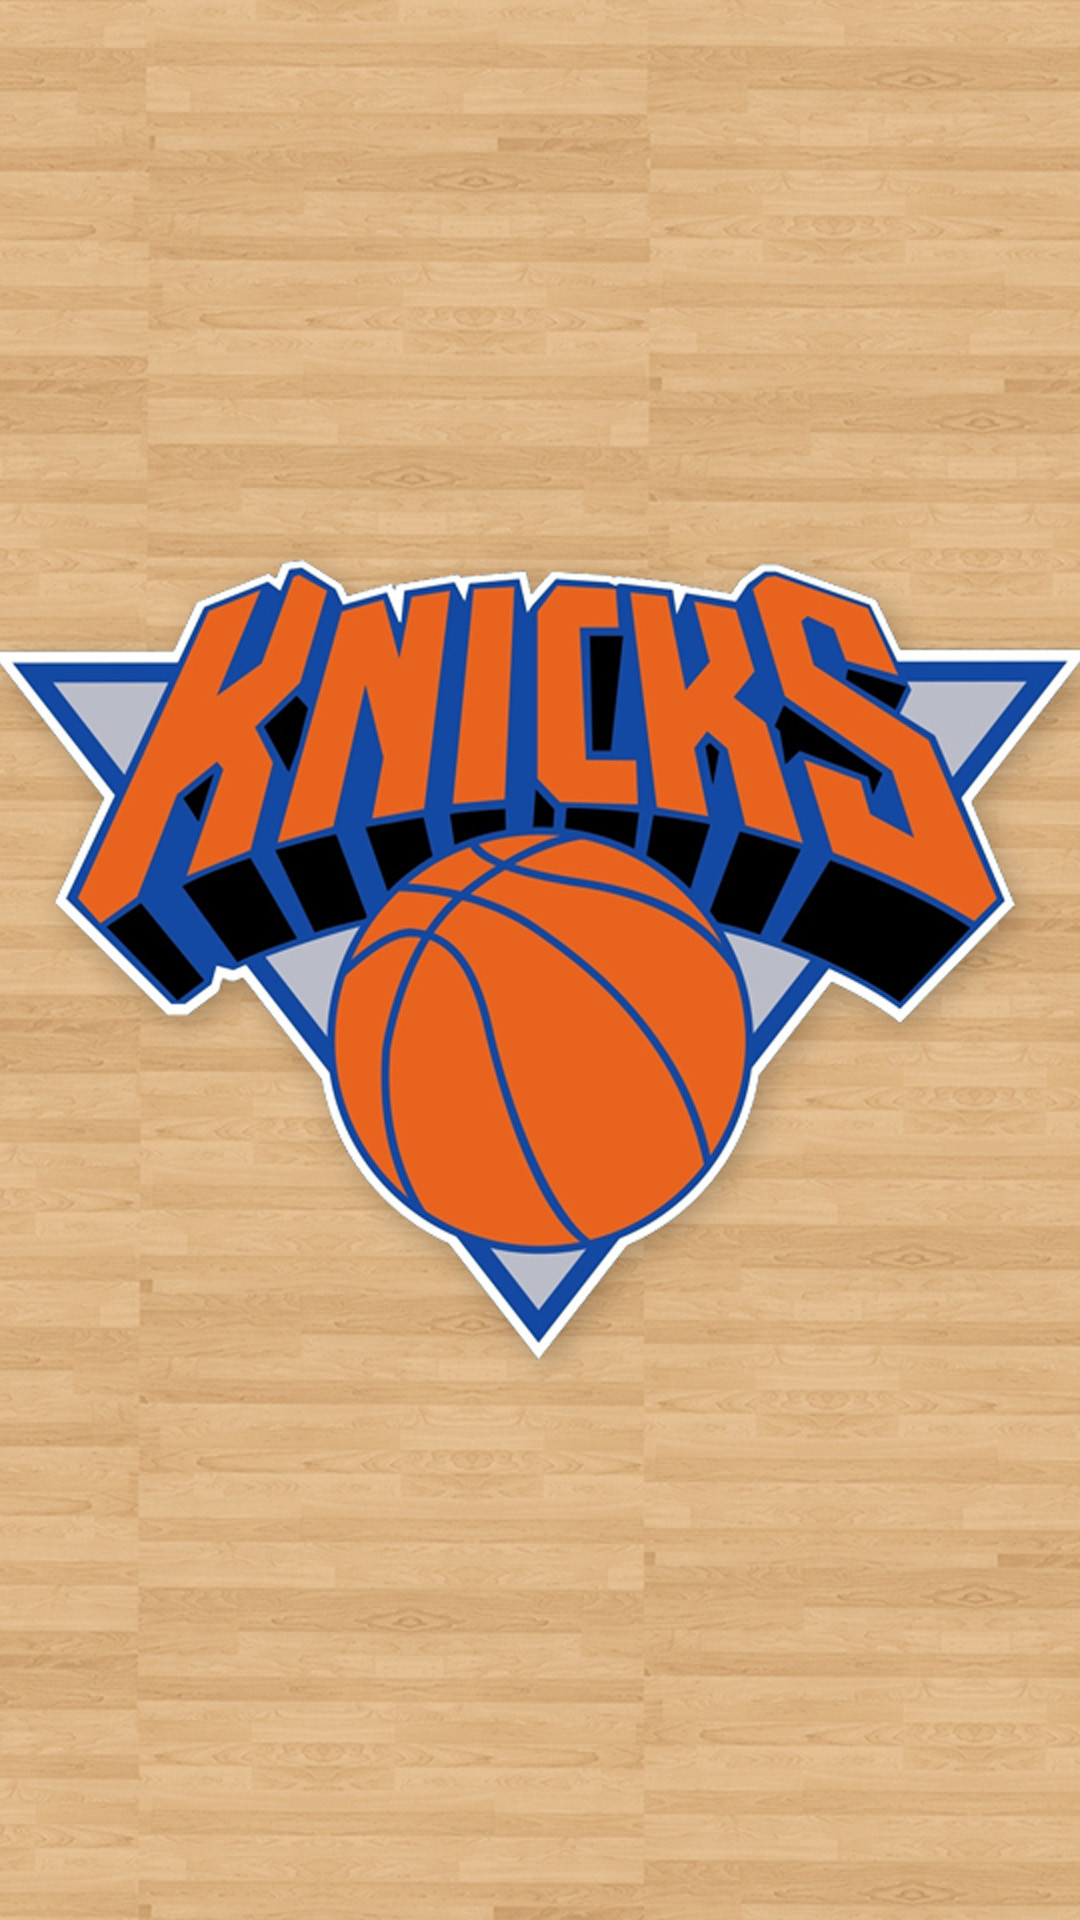 1080x1920 Knicks Wallpapers for Samsung Galaxy S5